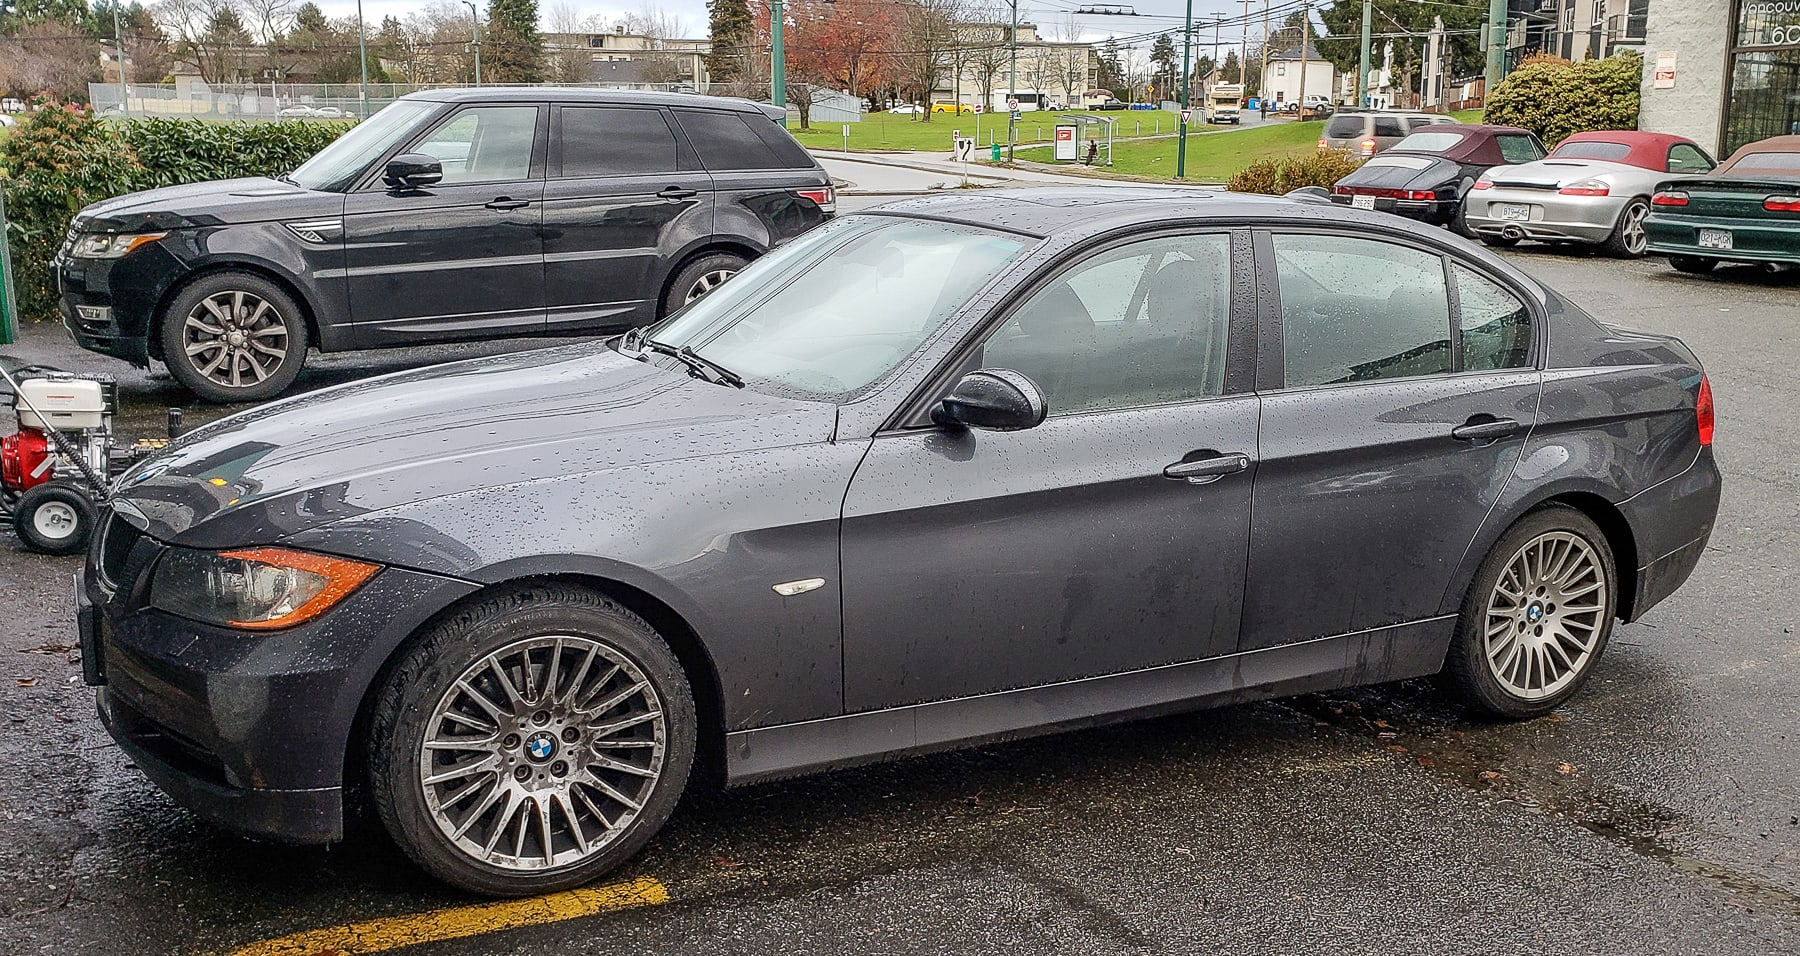 2008 BMW 328xi - Front End Clunk